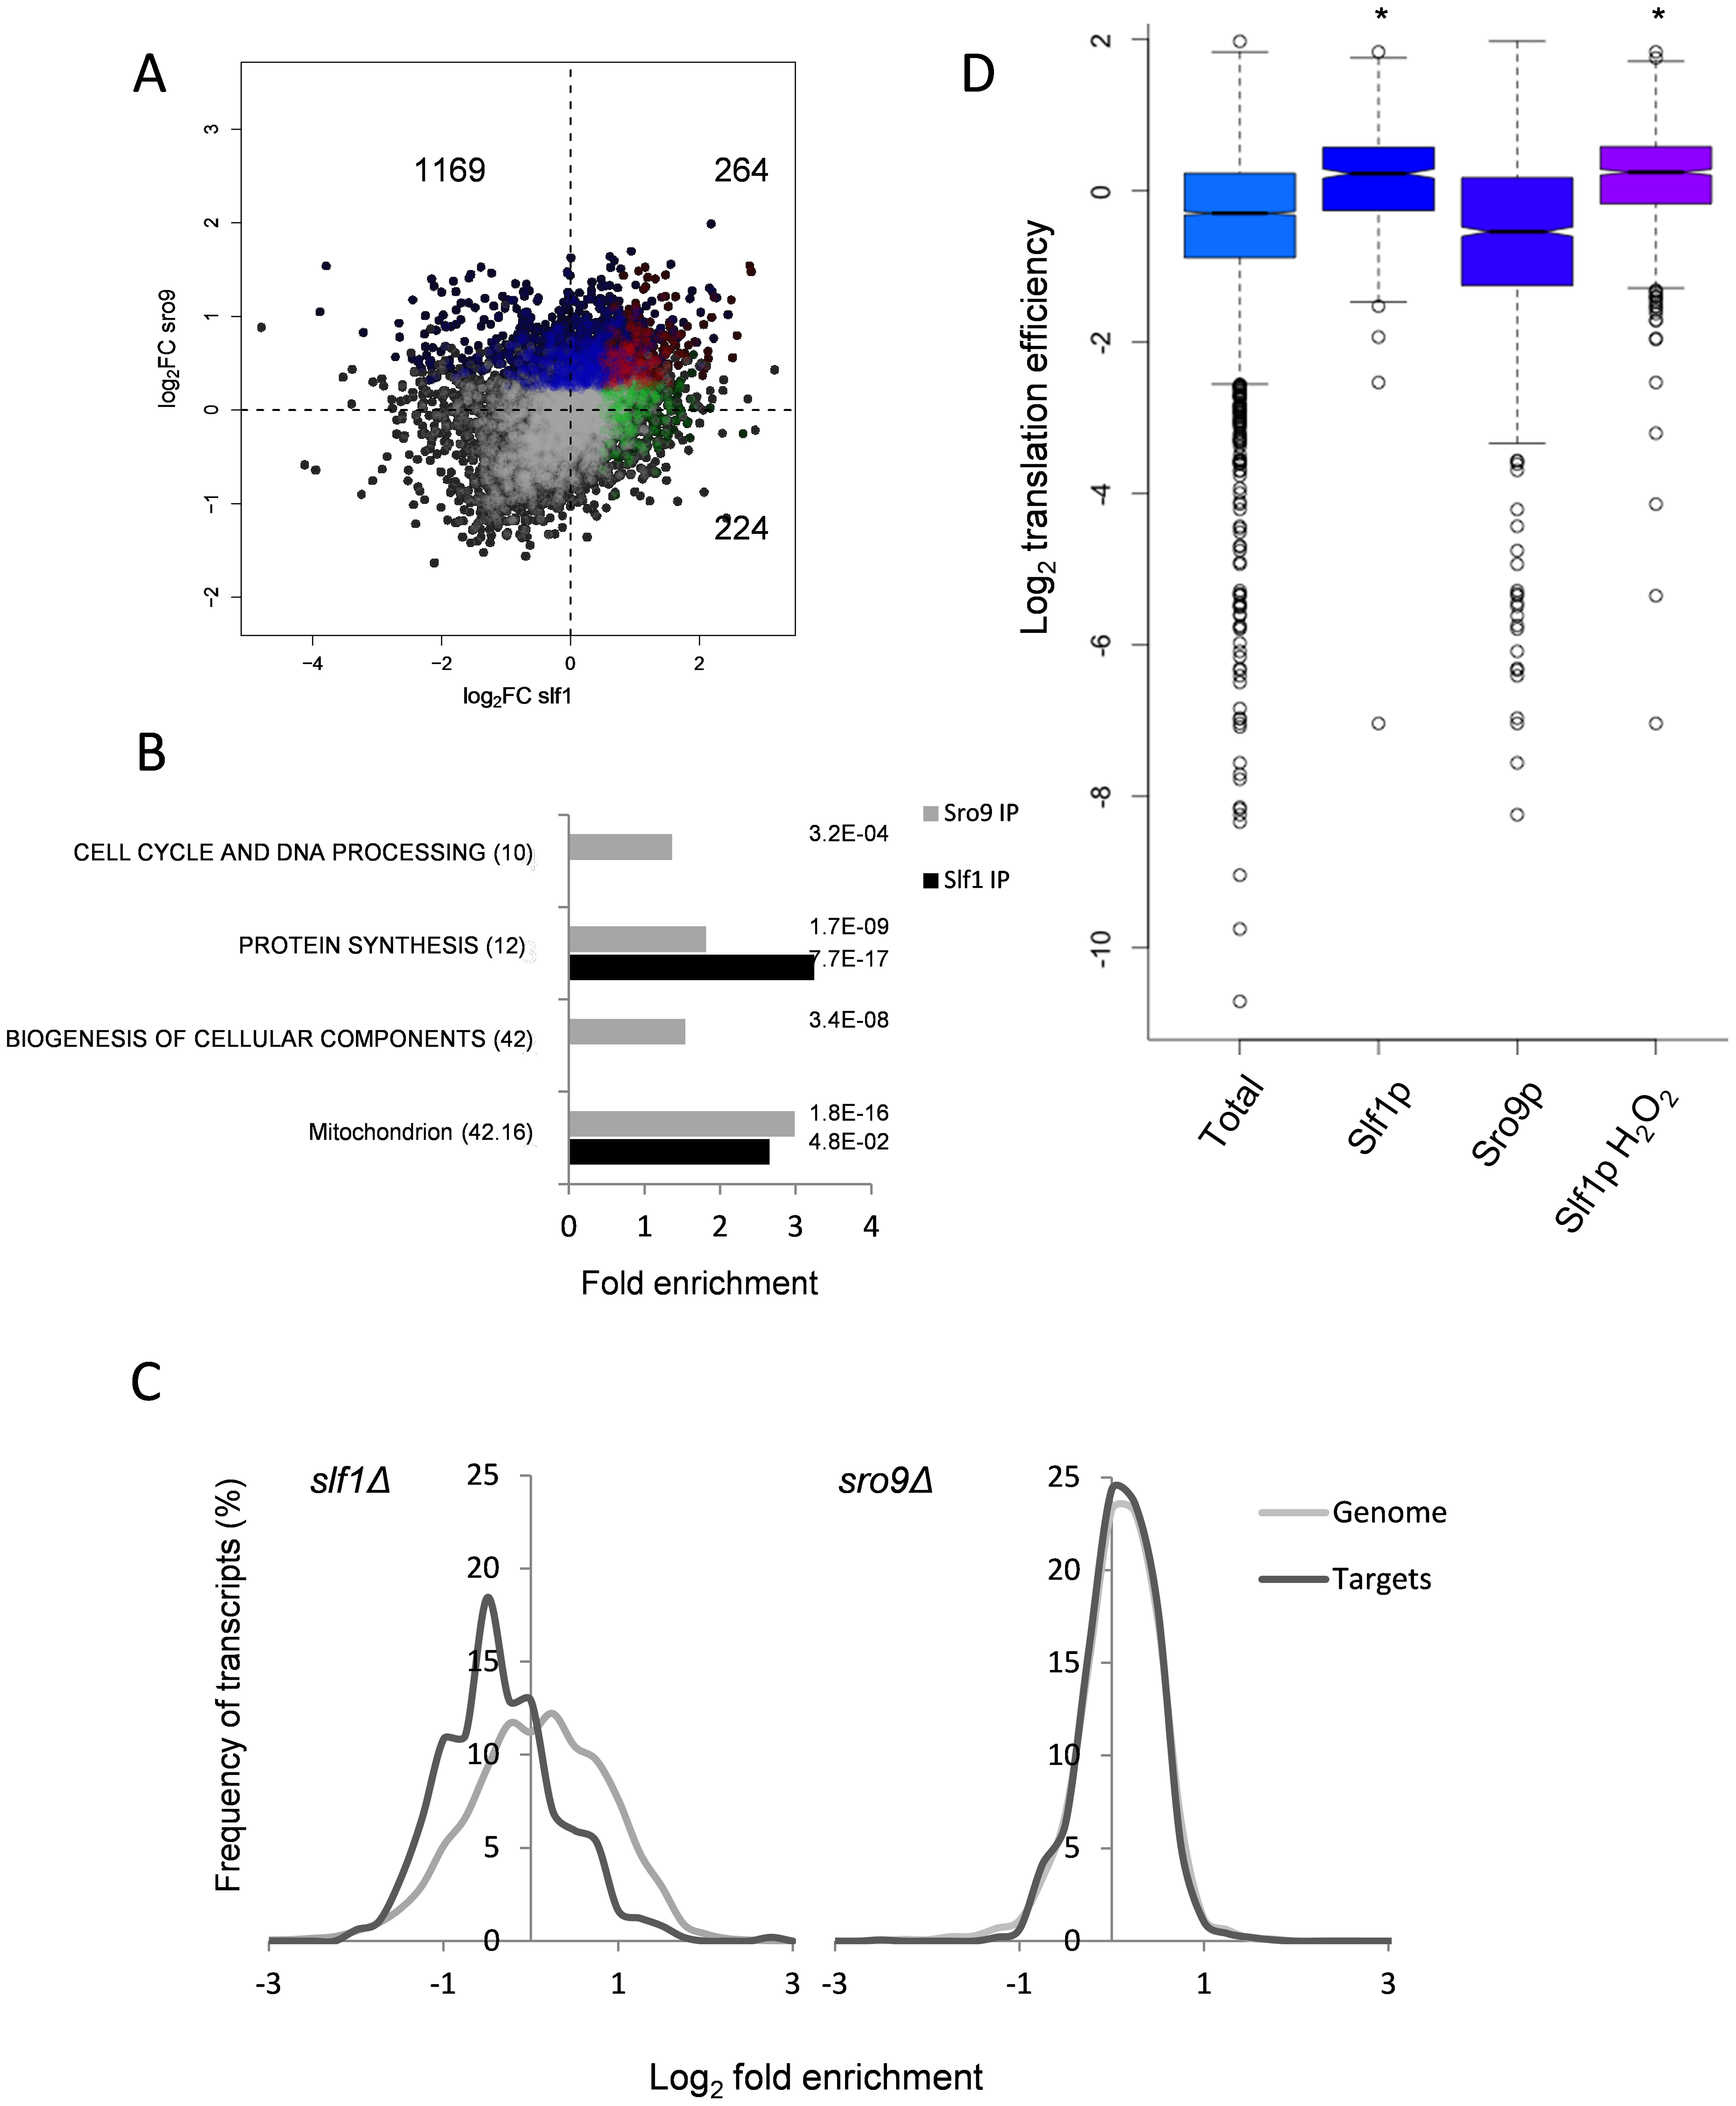 Comparison of Slf1p and Sro9p target mRNAs.